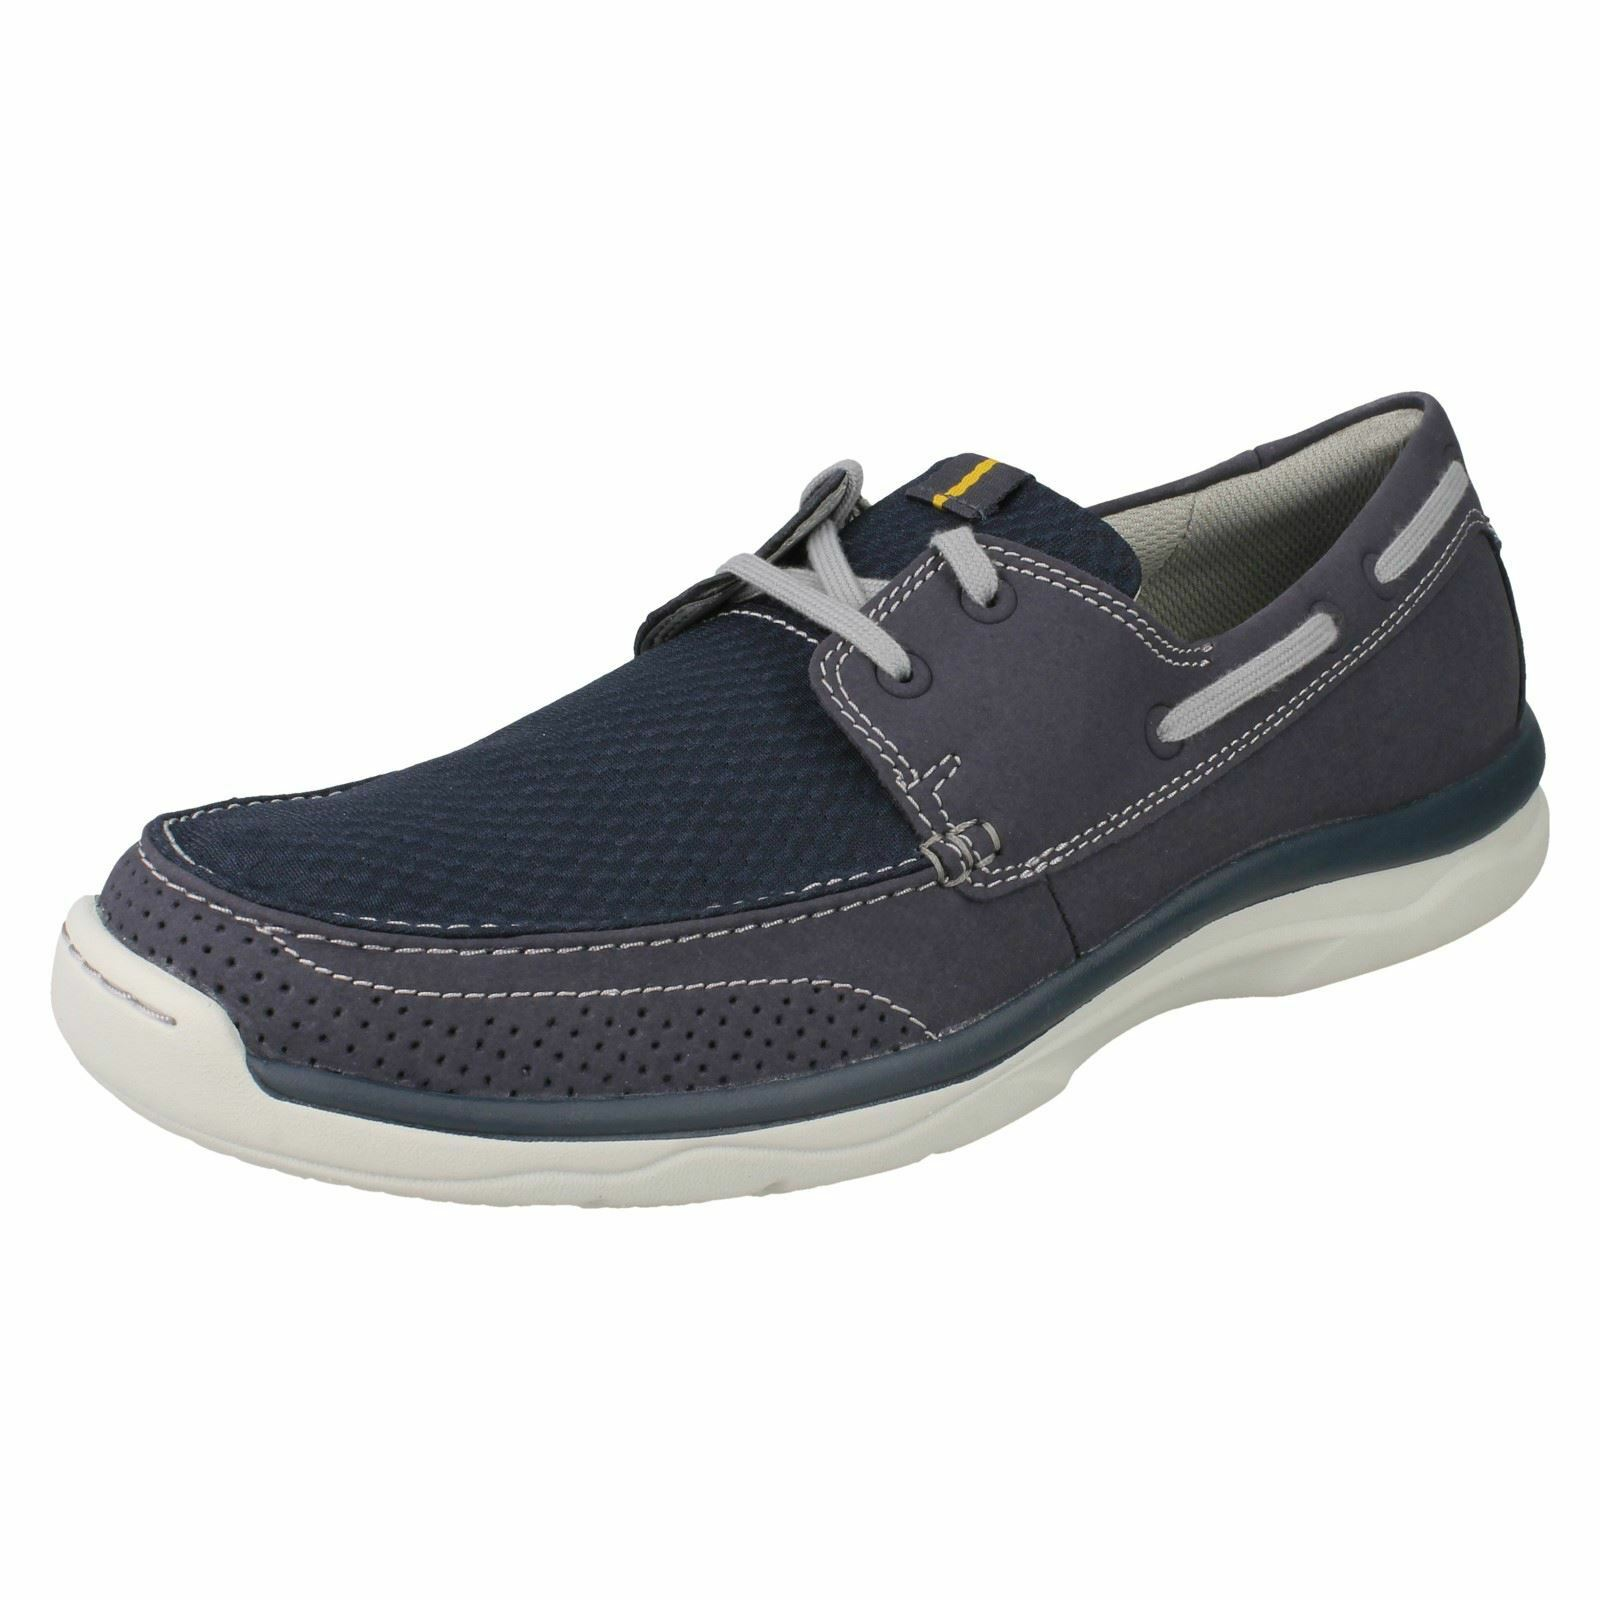 Mens Clarks Cloudsteppers Lace Up Casual schuhe 'Marus Edge'      |  | Für Ihre Wahl  fdb421